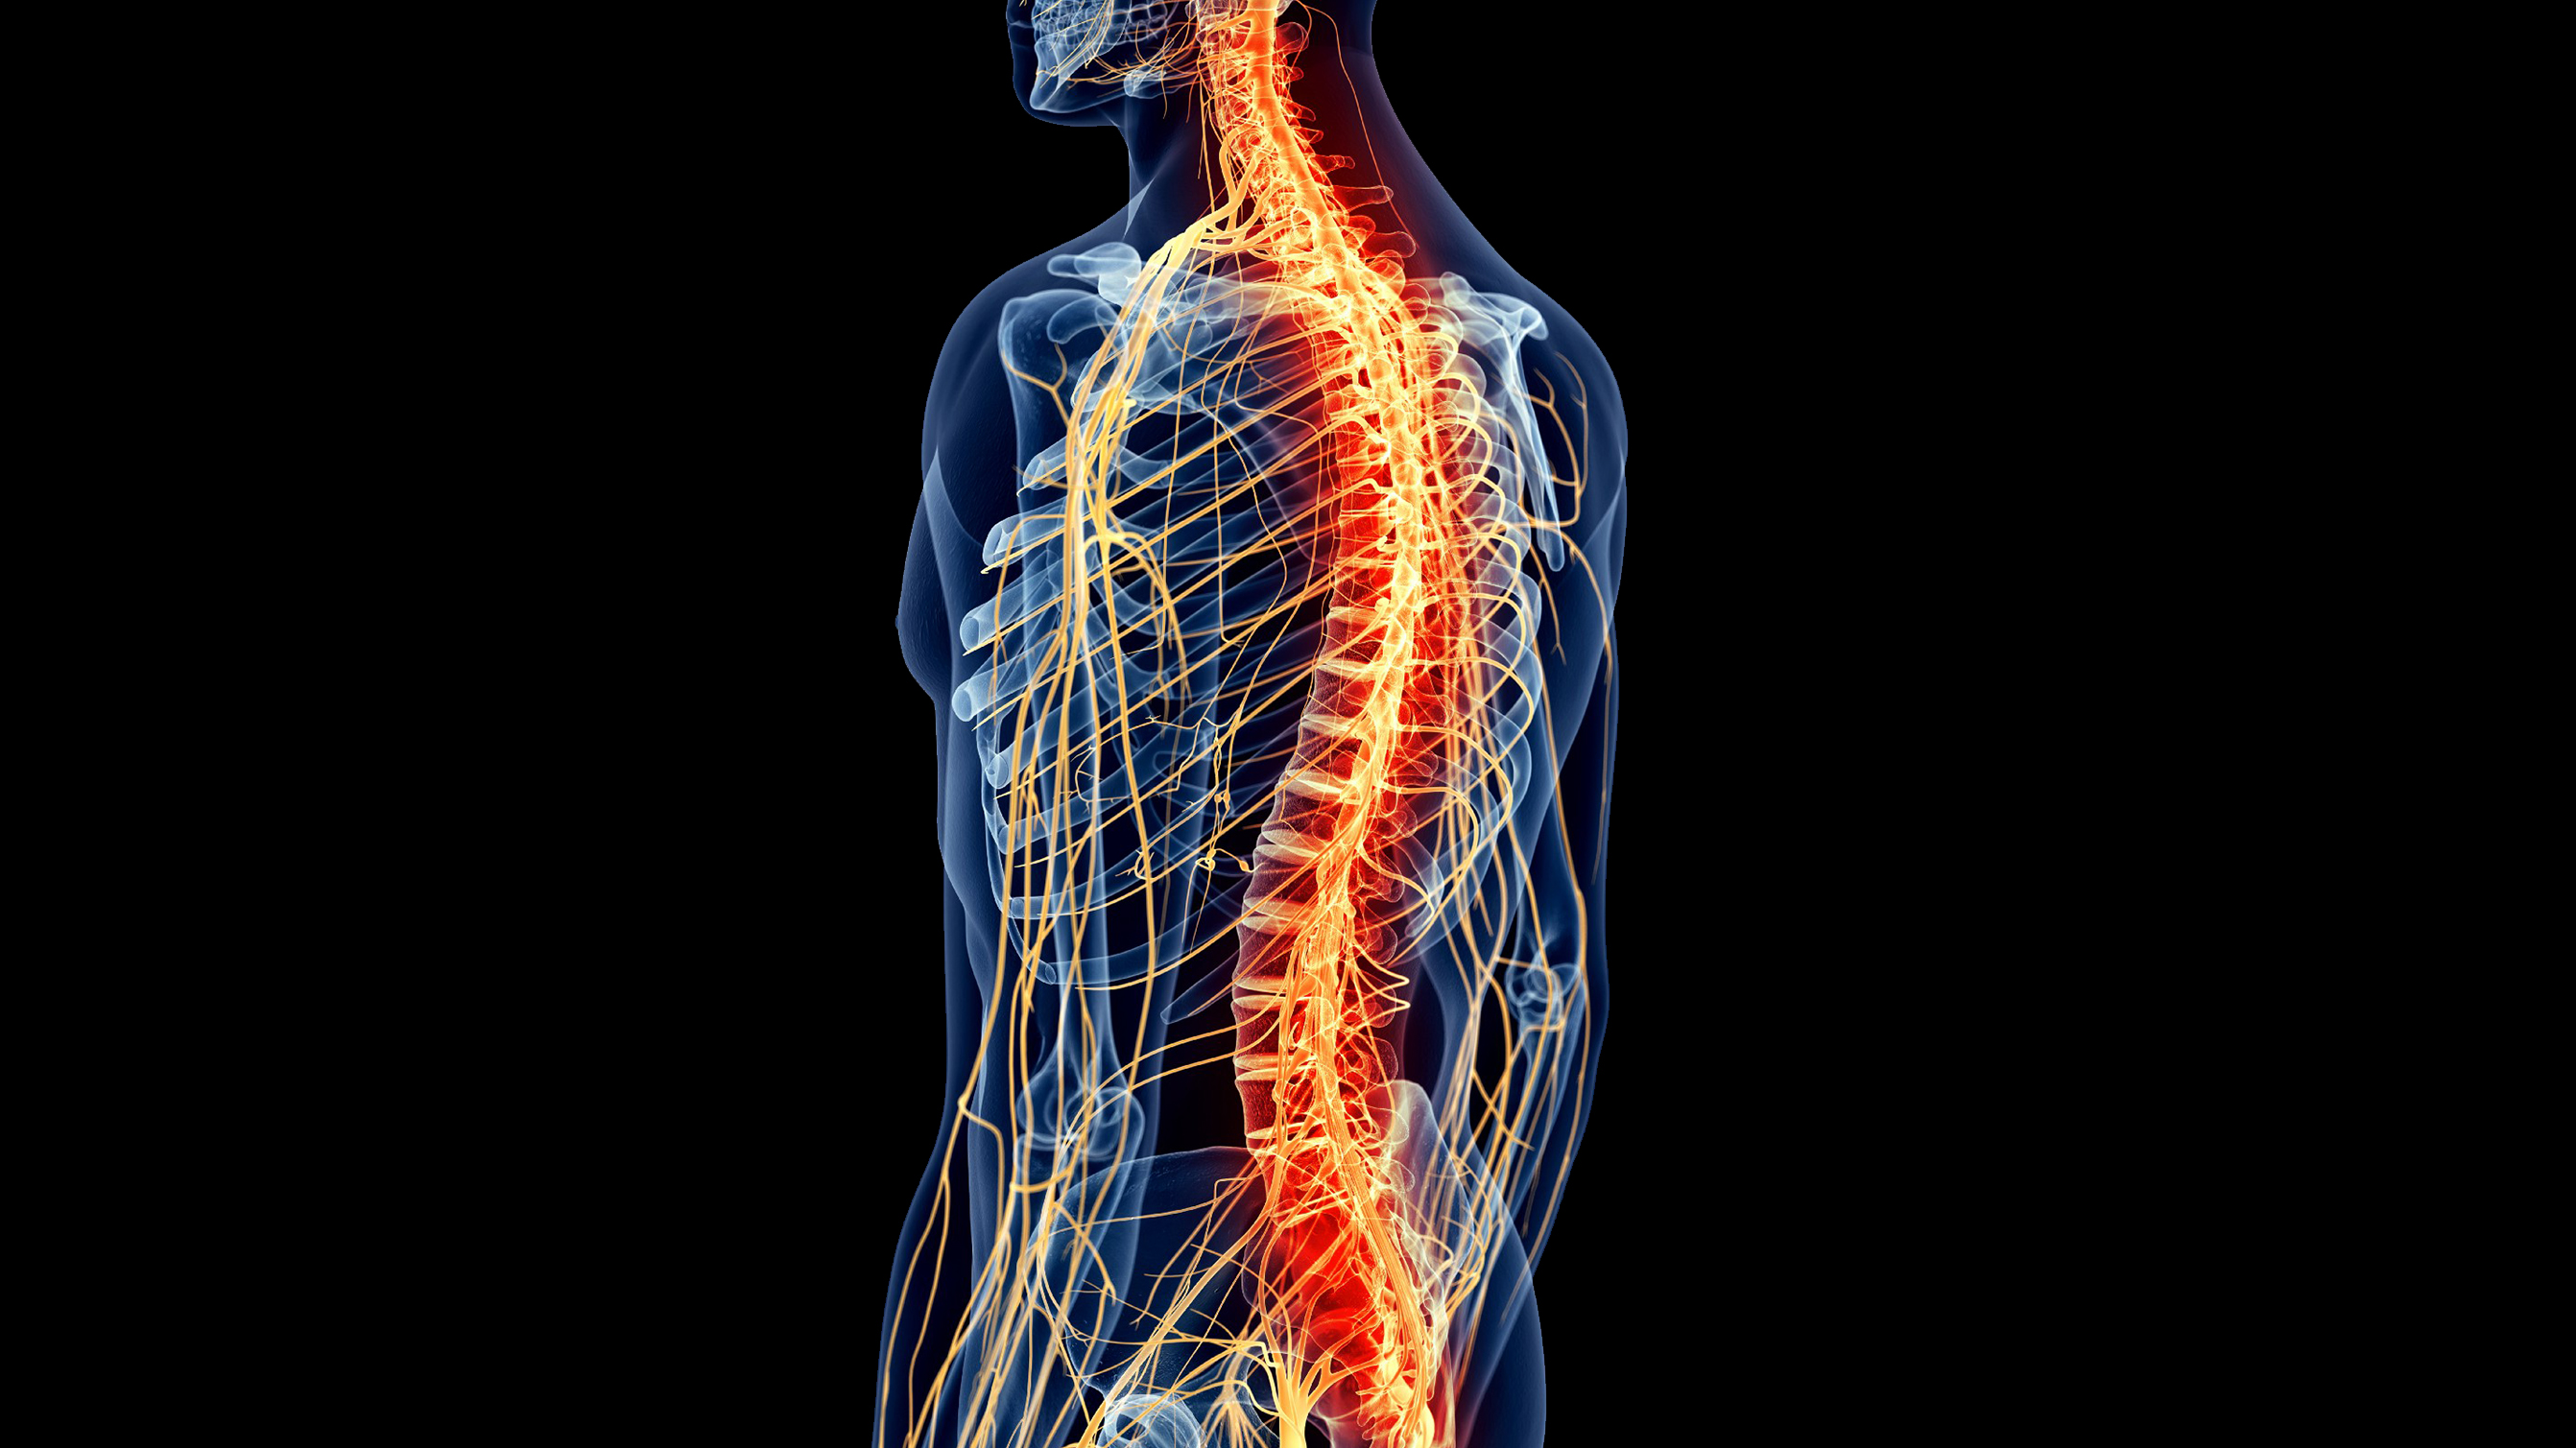 Difference Between a Complete Spinal Cord Injury and Incomplete Spinal Cord Injury